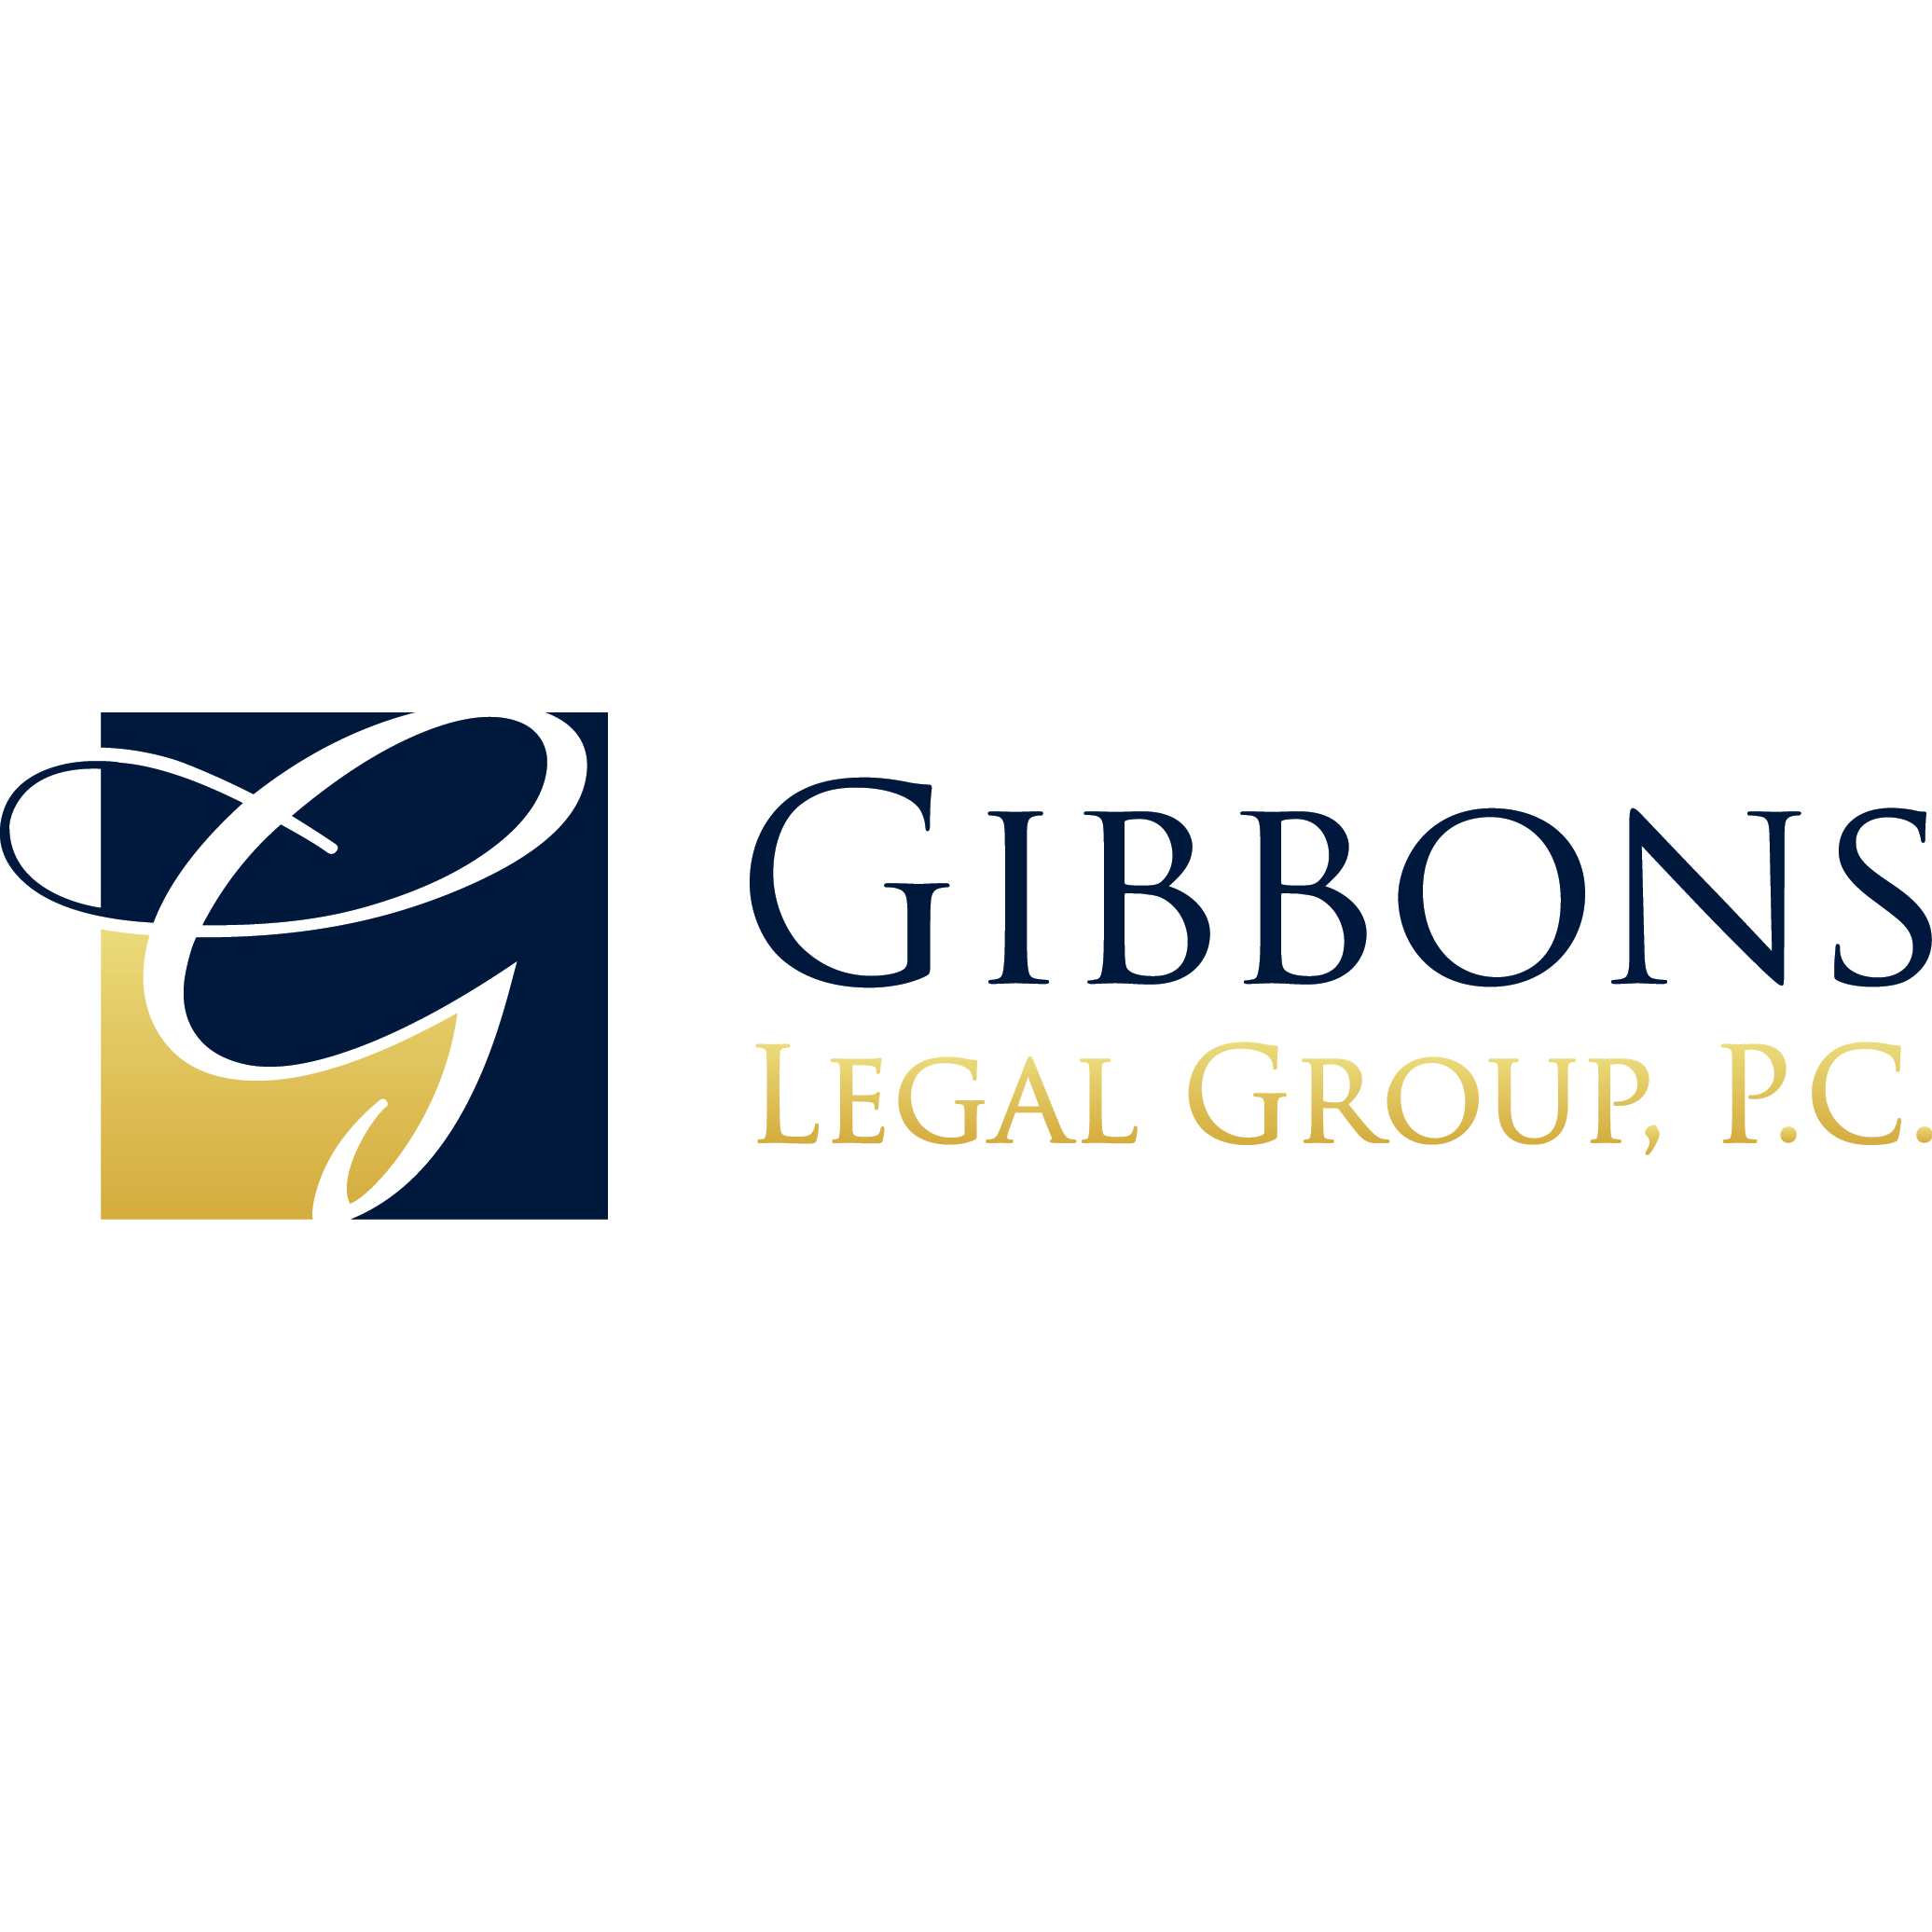 Gibbons Legal Group, P.C.